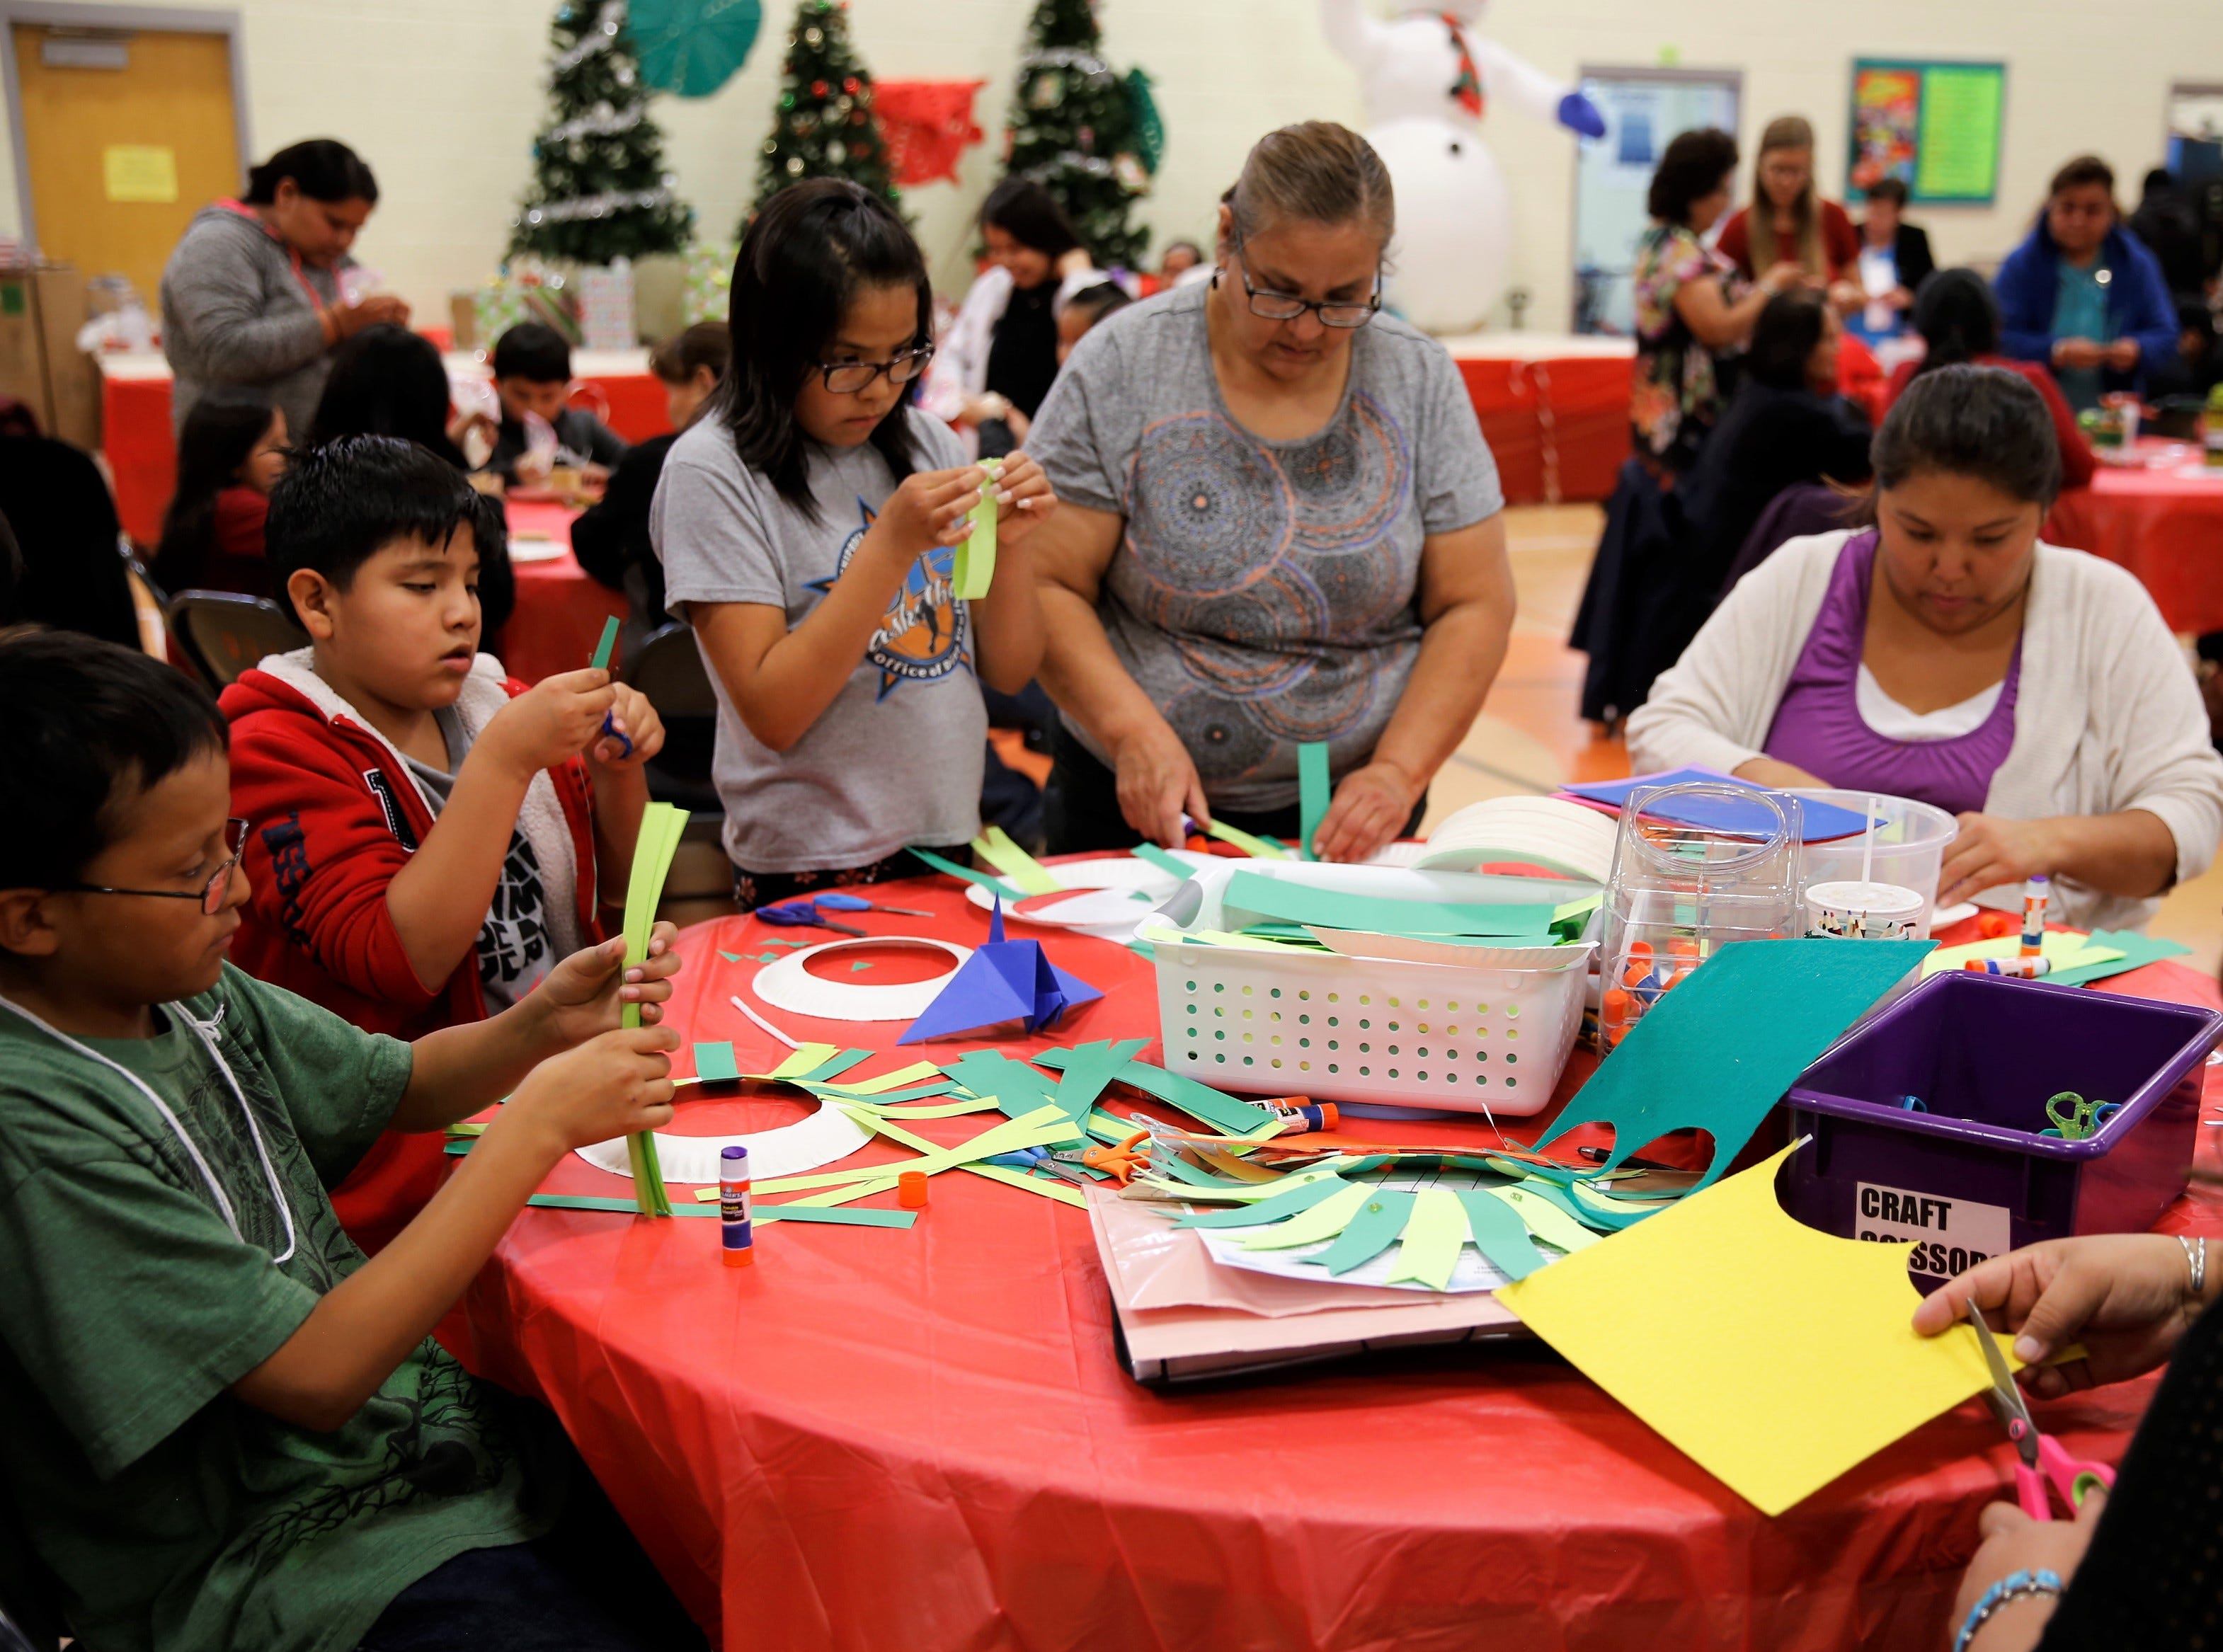 Participants make Christmas wreaths from paper plates and green paper during the family winter conference on Wednesday at the Shiprock Youth Complex in Shiprock.